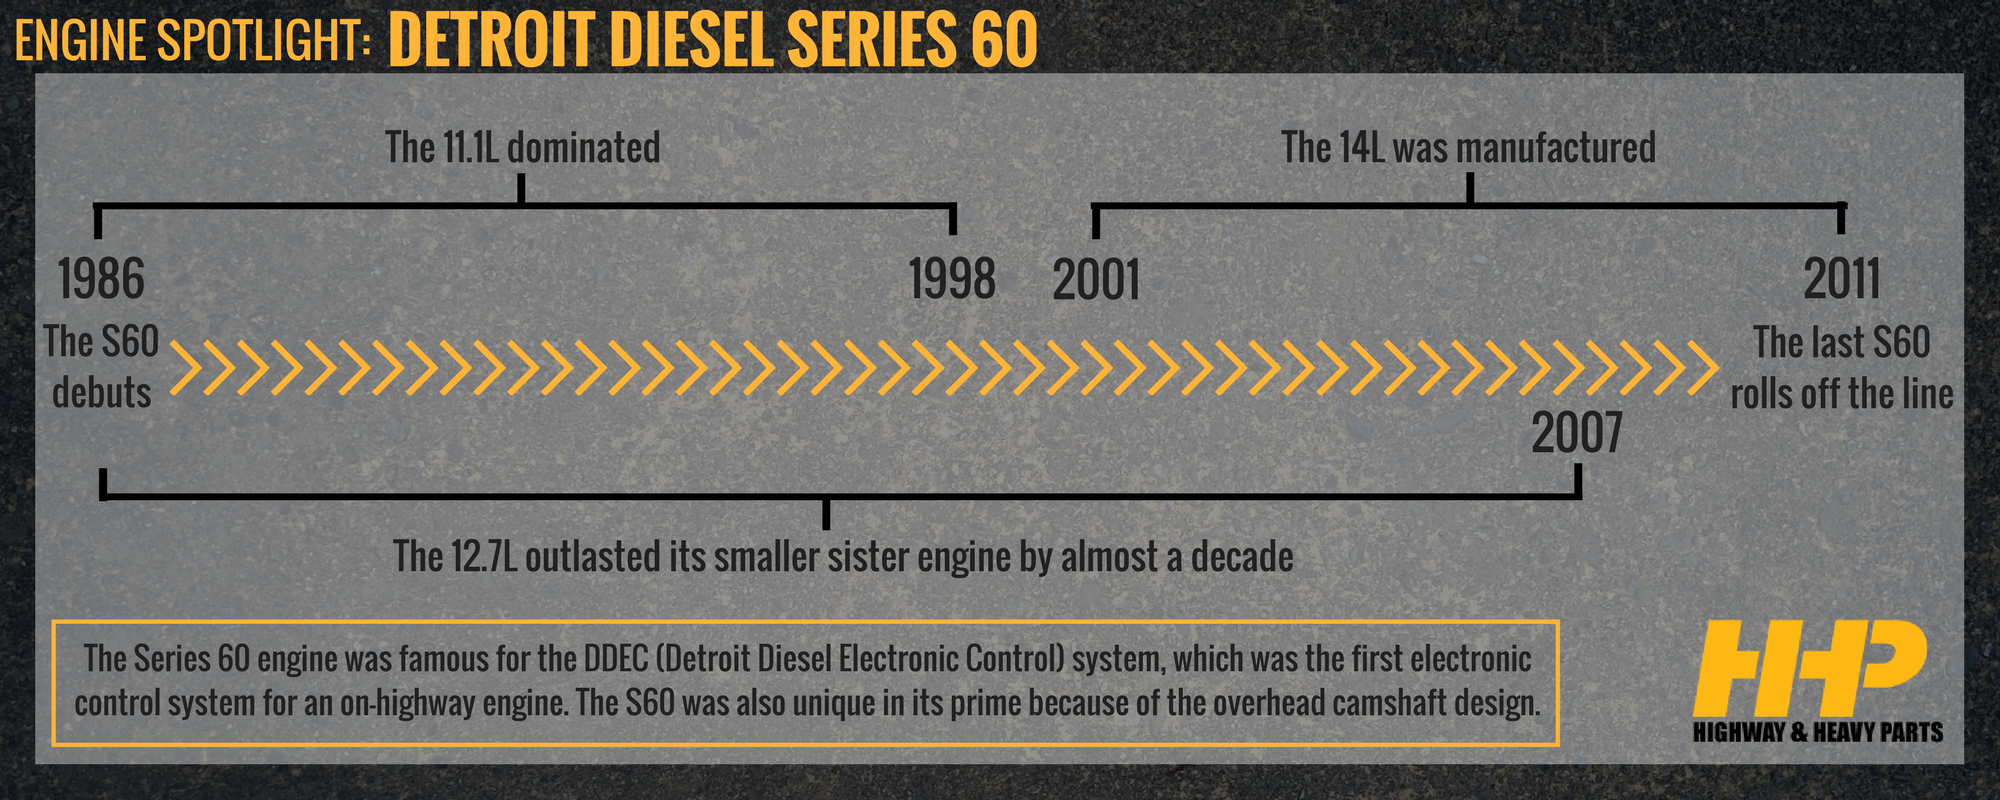 Series 60 Engine Timeline | Highway & Heavy Parts